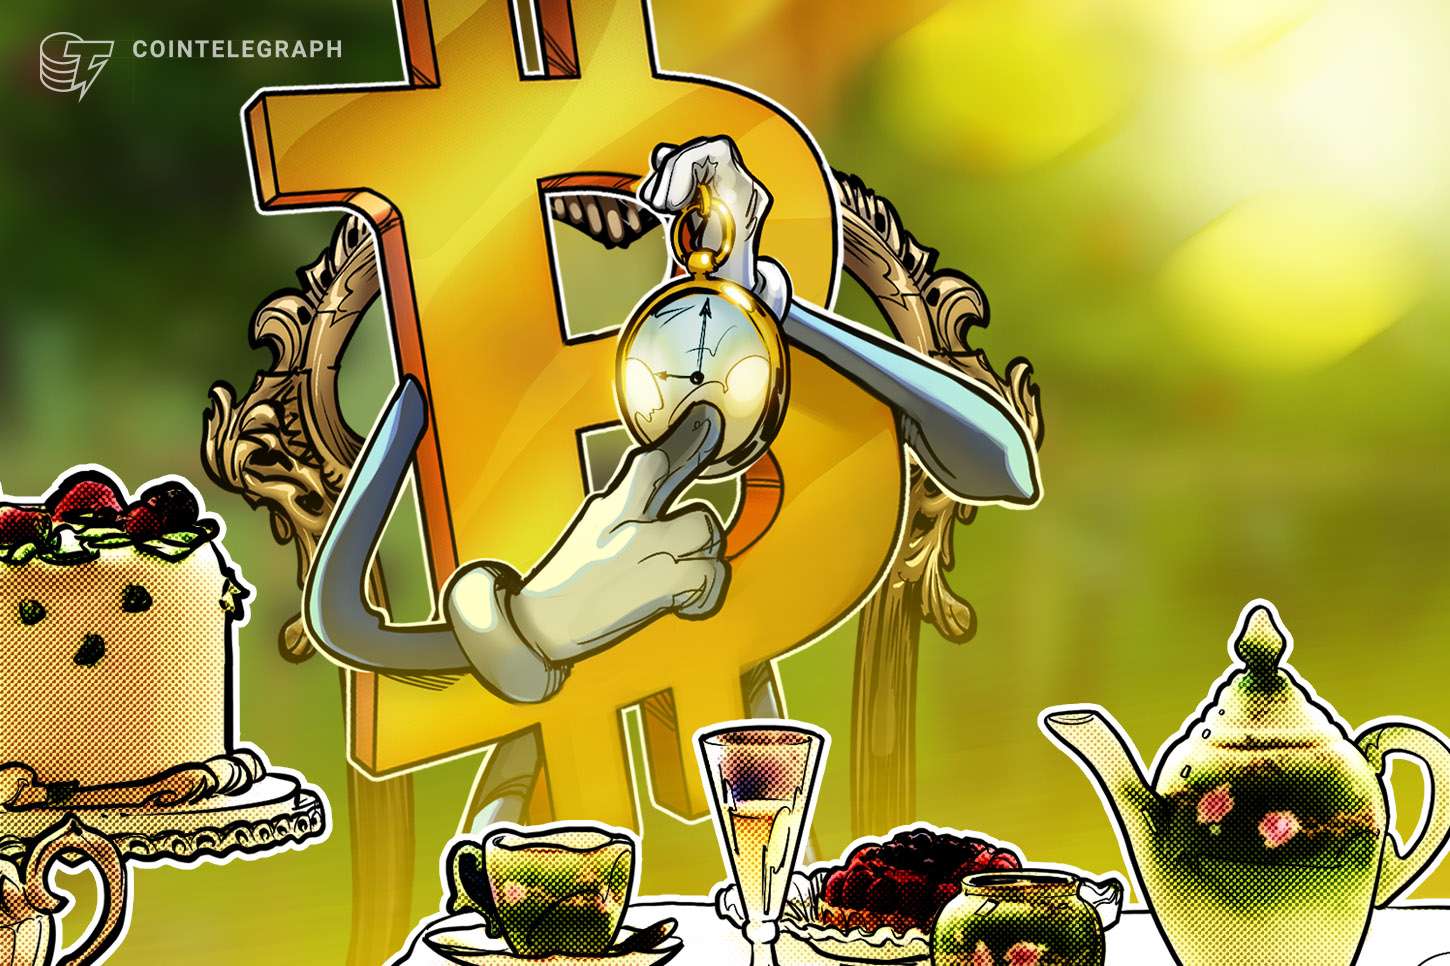 Time is our best friend: Bitcoin's 12-month trajectory to $100K